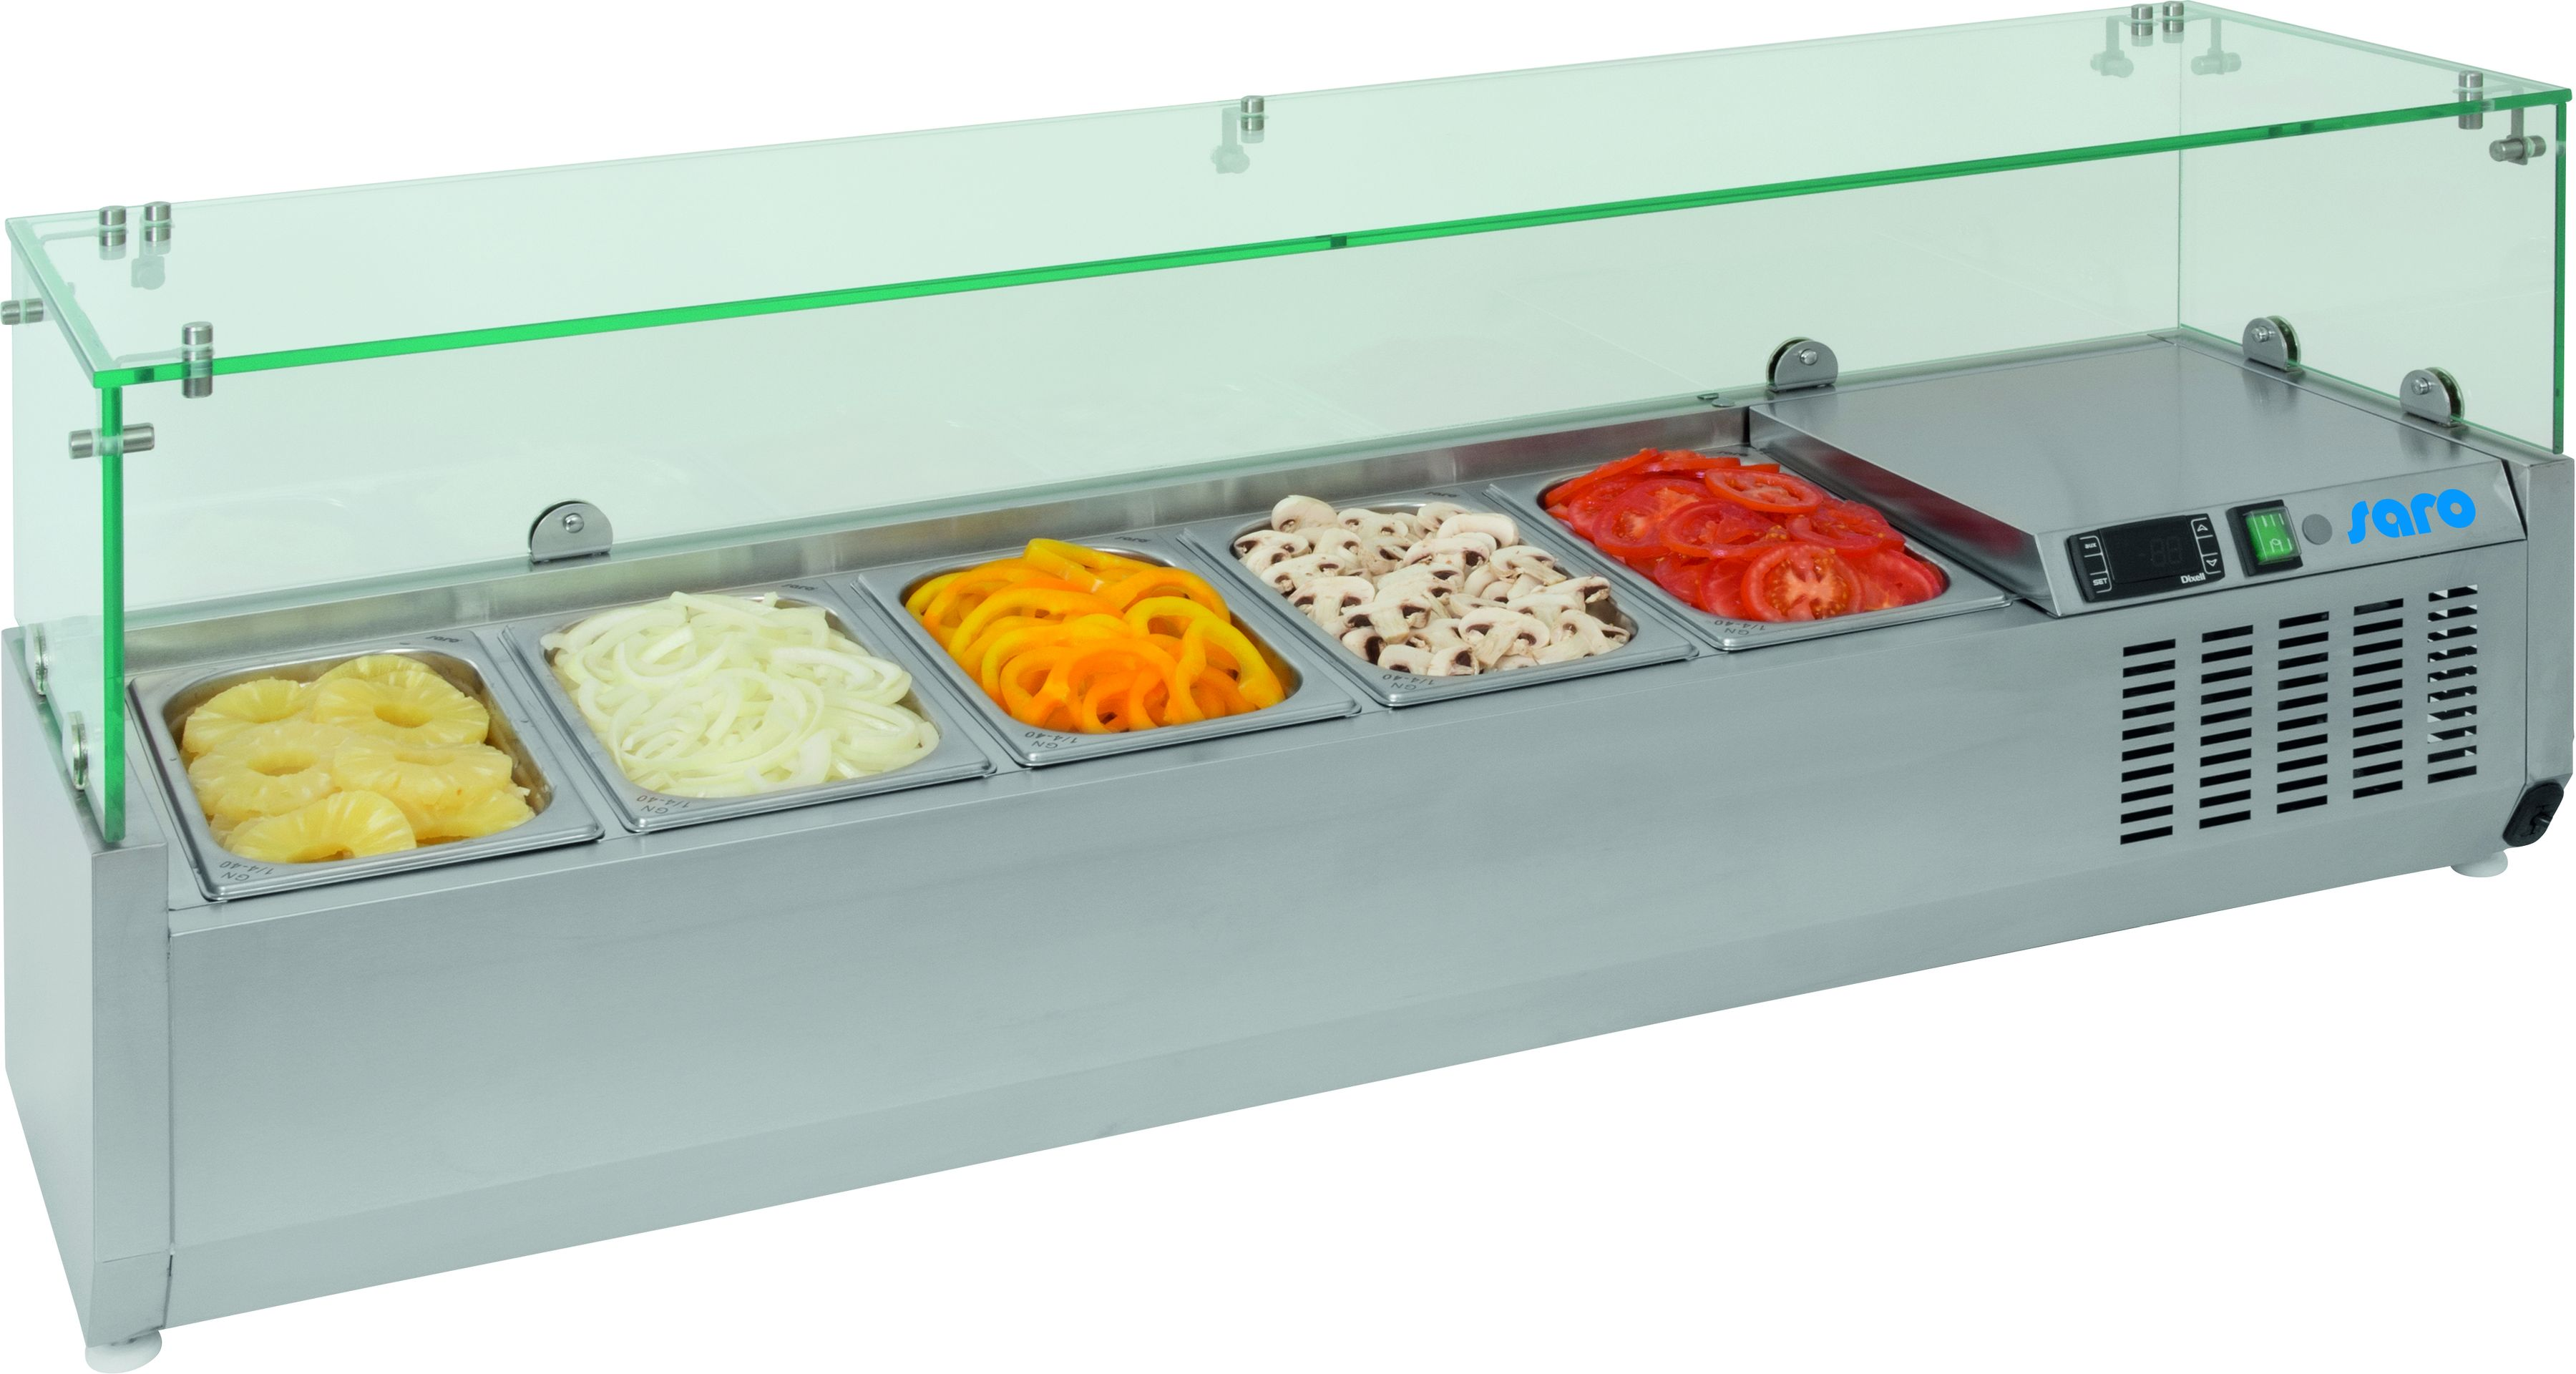 Refrigerated Table Top Display VRX 1400/330